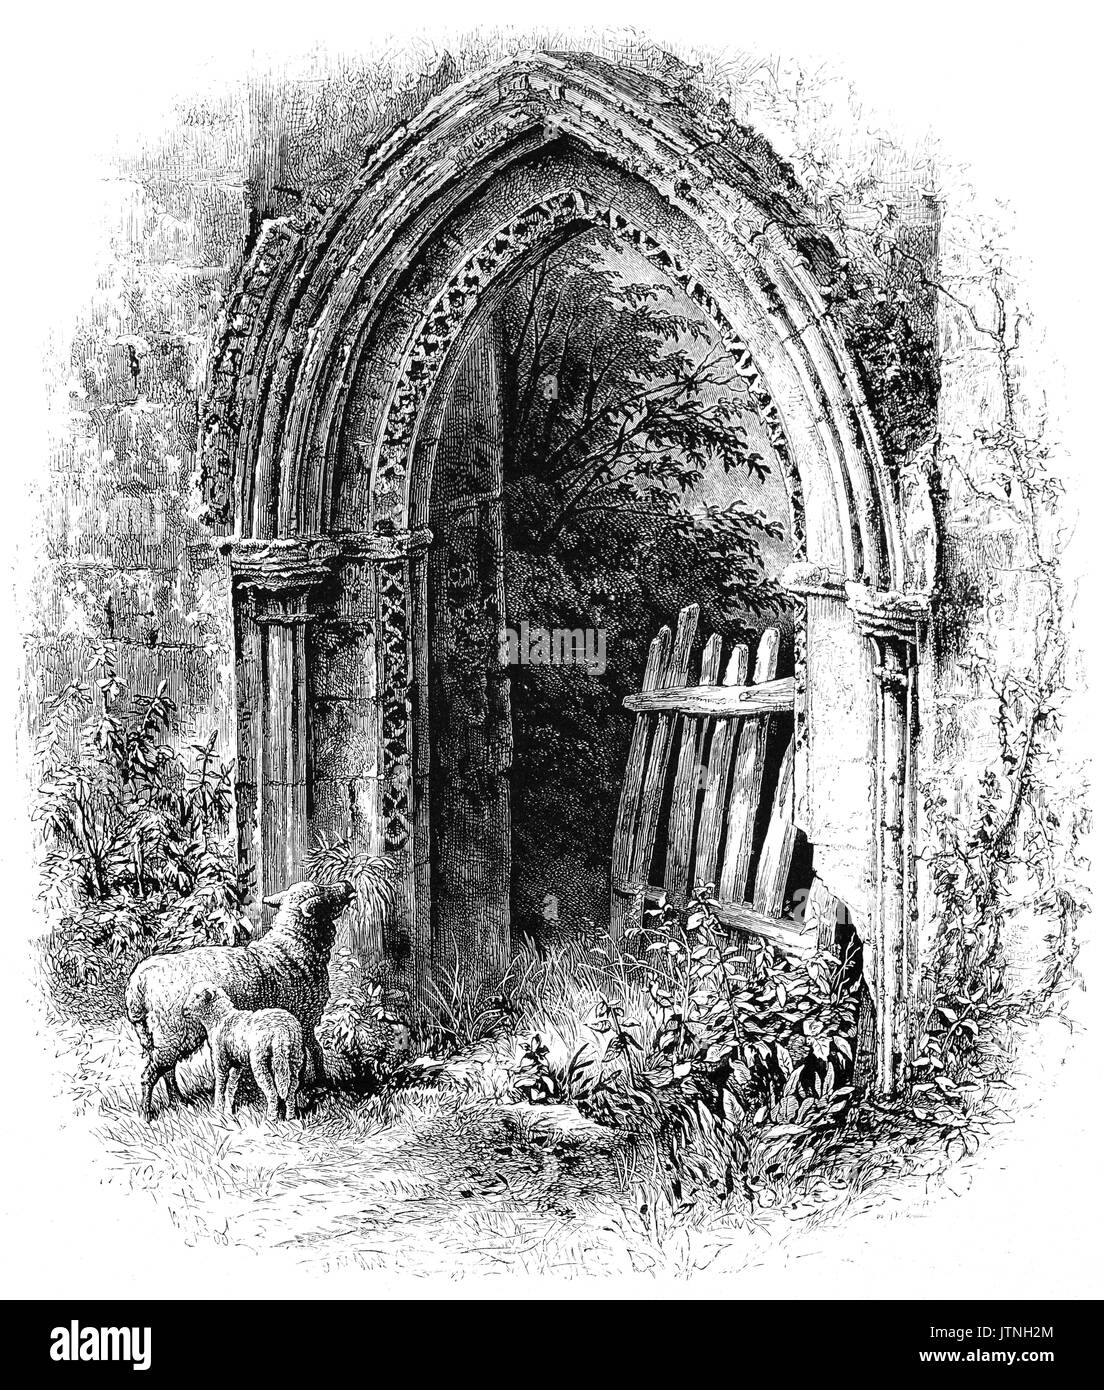 1870: Sheep beside a crumbling, but beautiful Romanesque  Arch at Rievaulx Abbey,  a former Cistercian abbey in Rievaulx, near Helmsley in the North York Moors National Park, North Yorkshire, England. Opened in 1132 and headed by the Abbot of Rievaulx, it was one of the wealthiest abbeys in England until it was dissolved by Henry VIII of England in 1538. - Stock Image